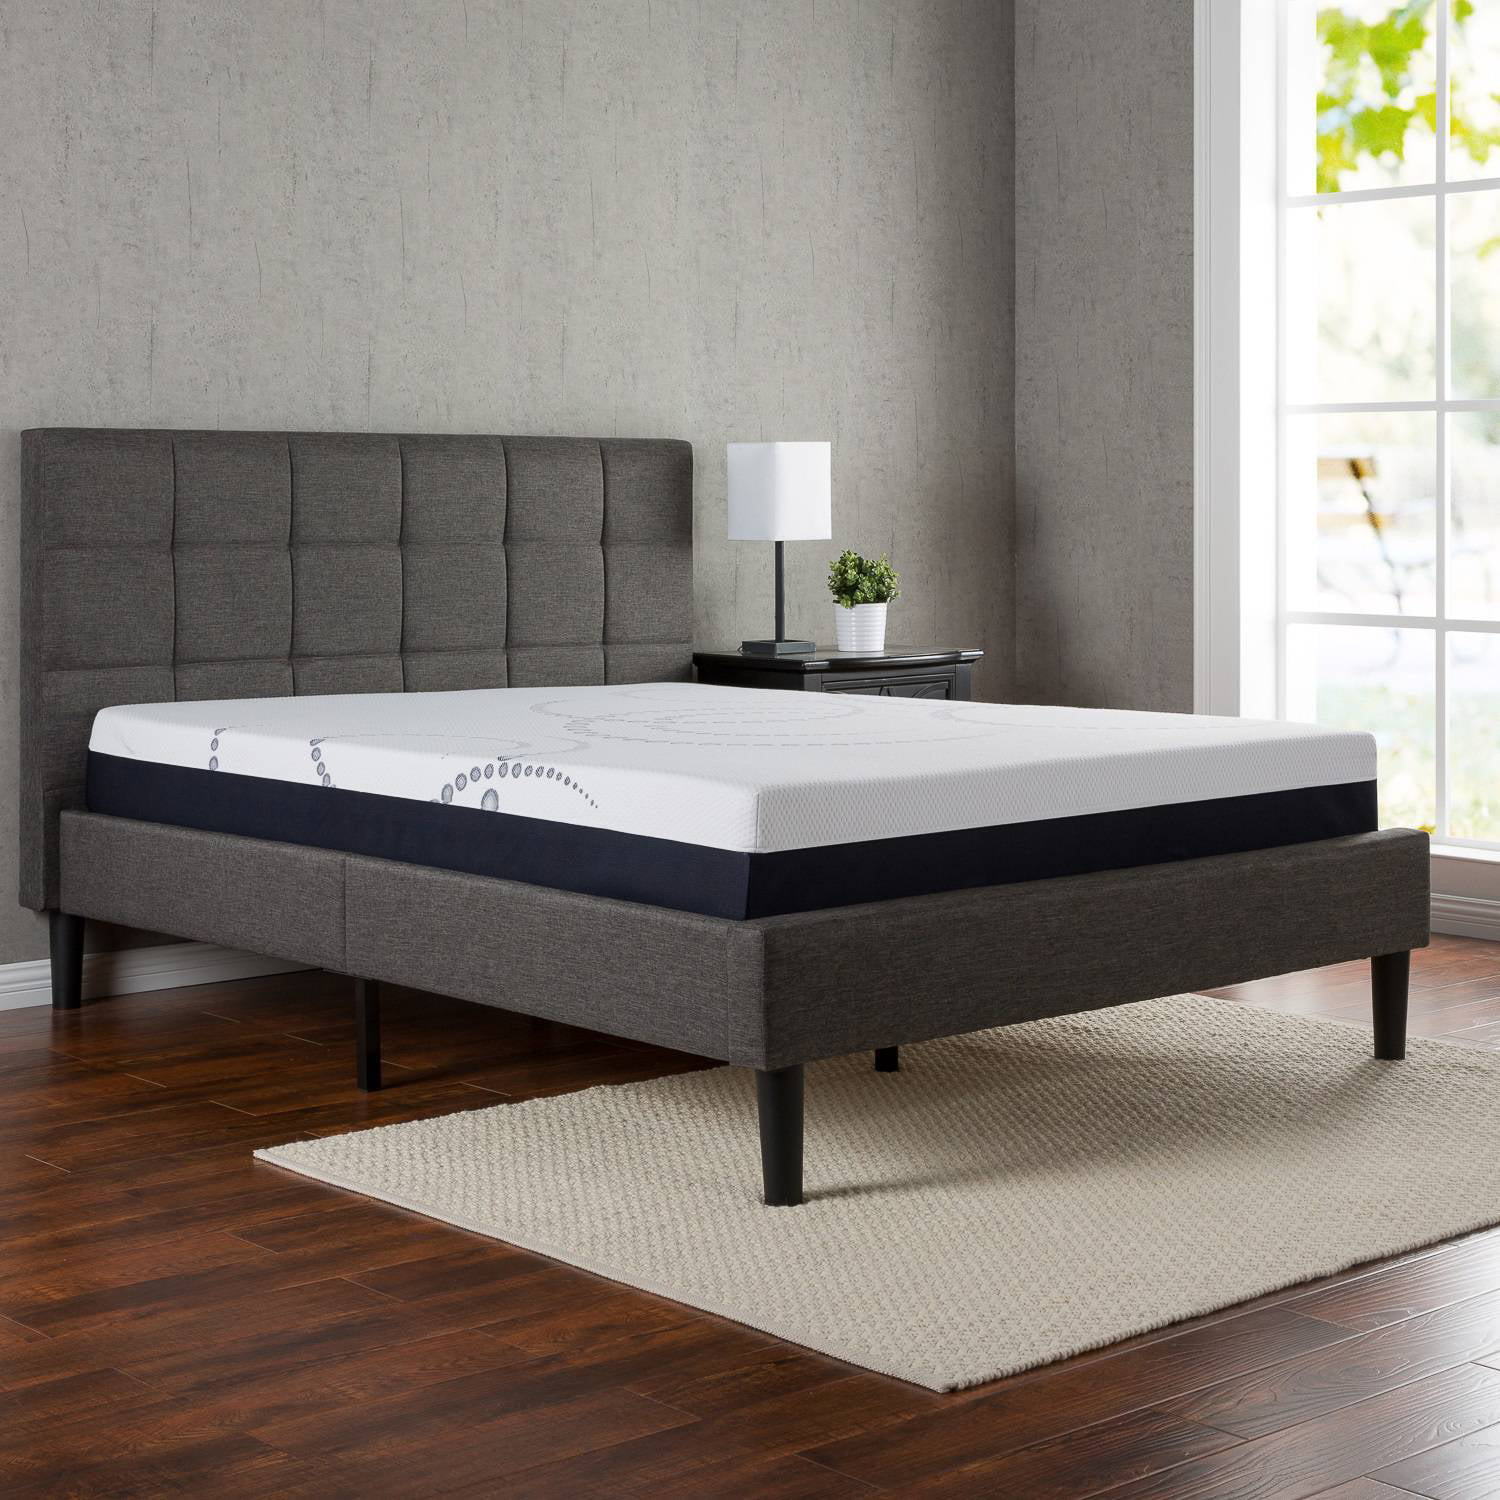 zinus upholstered square stitched platform bed with headboard and wooden slats walmartcom